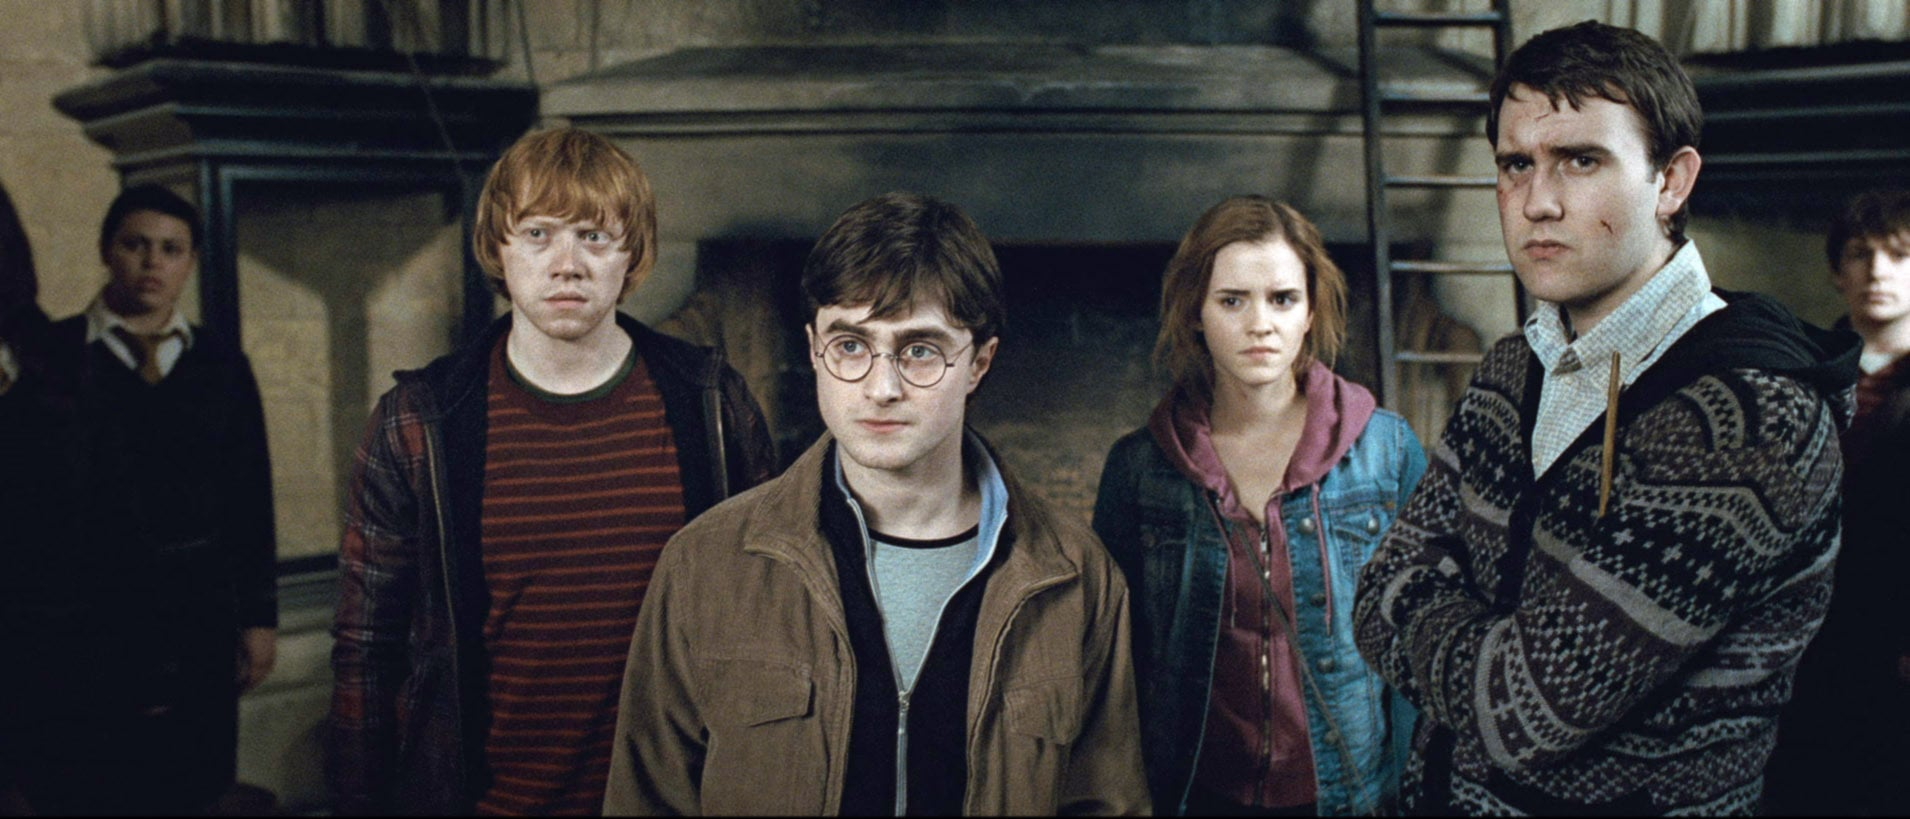 HARRY POTTER AND THE DEATHLY HALLOWS: PART 2, from left: Rupert Grint, Daniel Radcliffe, Emma Watson, Matthew Lewis, 2011. 2011 Warner Bros. Ent. Harry Potter publishing rights J.K.R. Harry Potter characters, names and related indicia are trademarks of and Warner Bros. Ent. All rights reserved./Courtesy Everett Collection